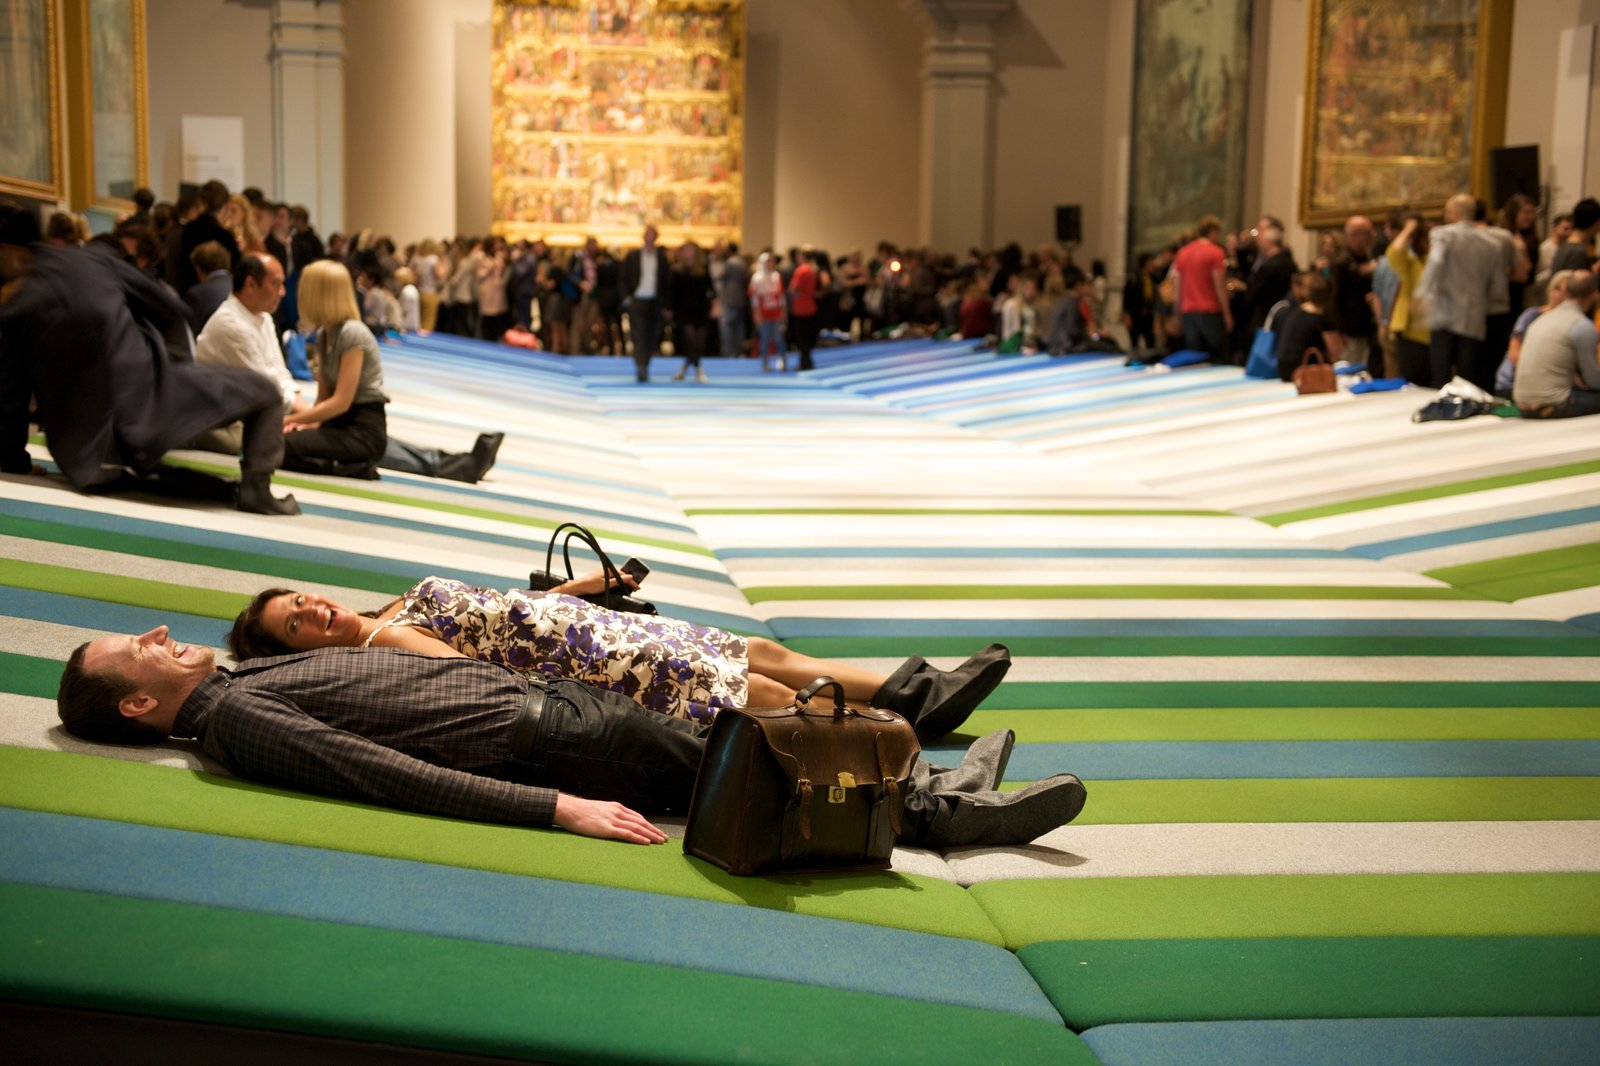 Festival-goers experience Textile Field by Ronan and Erwan Bouroullec, installed in the Rafael Court of the V&A at the London Design Festival 2011. Photo by Susan Smart.  Photo 1 of 4 in The Design Week Movement